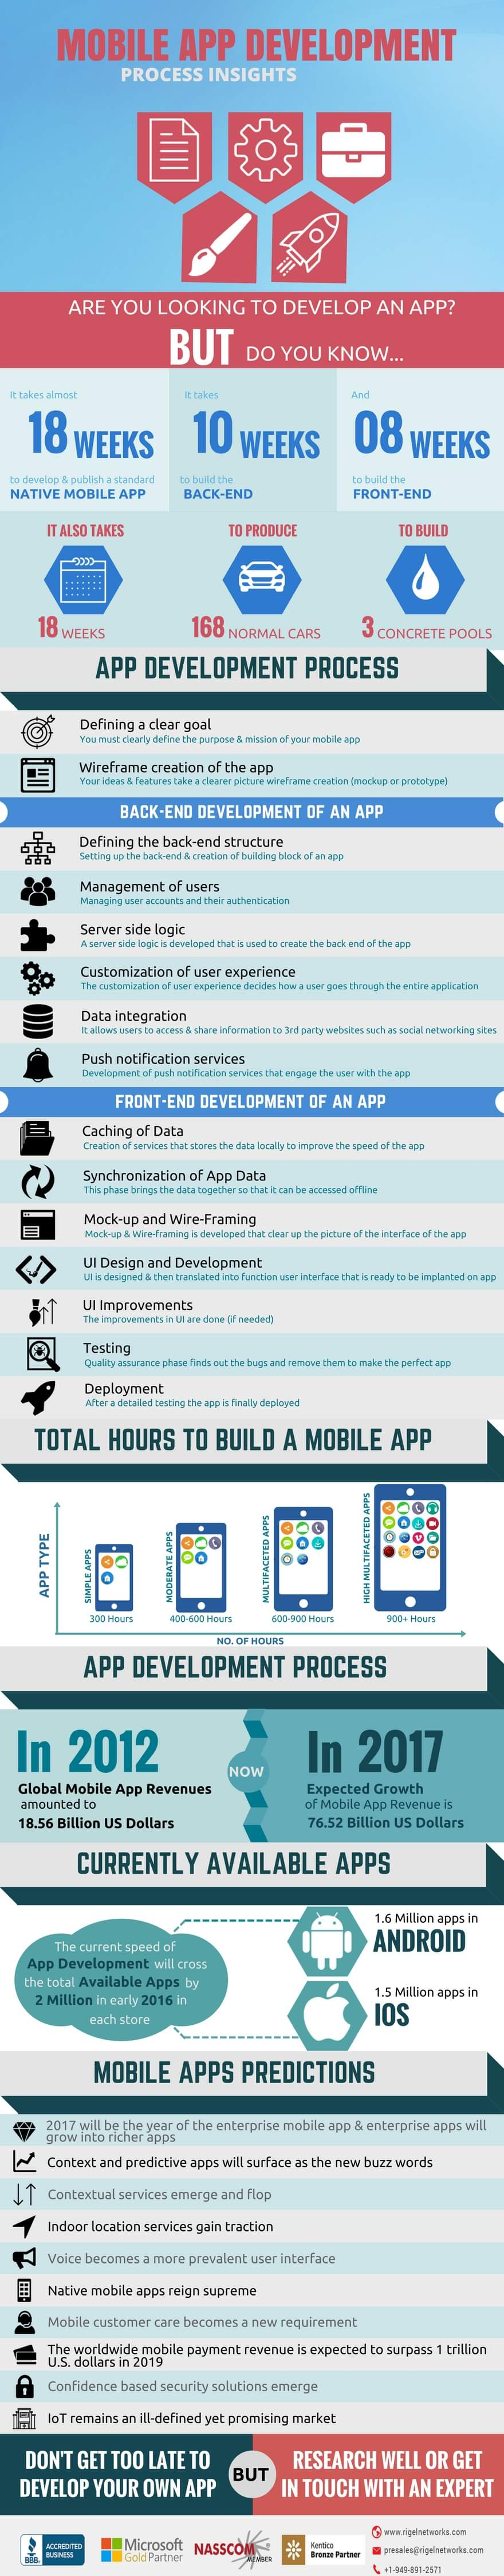 mobile-app-development-process-of-insights-1